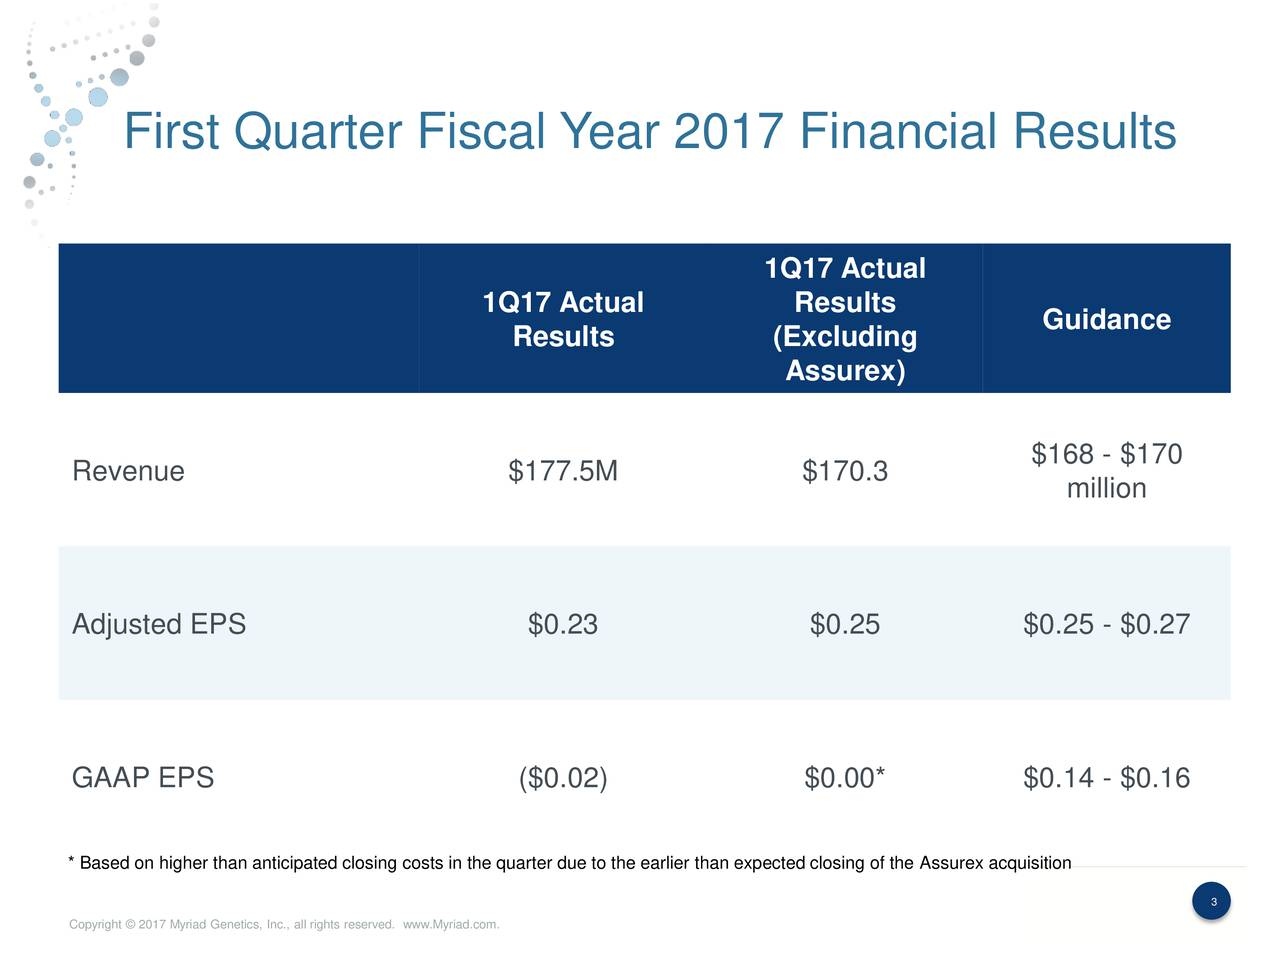 1Q17 Actual 1Q17 Actual Results Guidance Results (Excluding Assurex) $168 - $170 Revenue $177.5M $170.3 million Adjusted EPS $0.23 $0.25 $0.25 - $0.27 GAAP EPS ($0.02) $0.00* $0.14 - $0.16 * Based on higher than anticipated closing costs in the quarter due to the earlier than expected closing of the Assurex acquisition 3 3 Copyright  2017 Myriad Genetics, Inc., all rights reserved. www.Myriad.com.